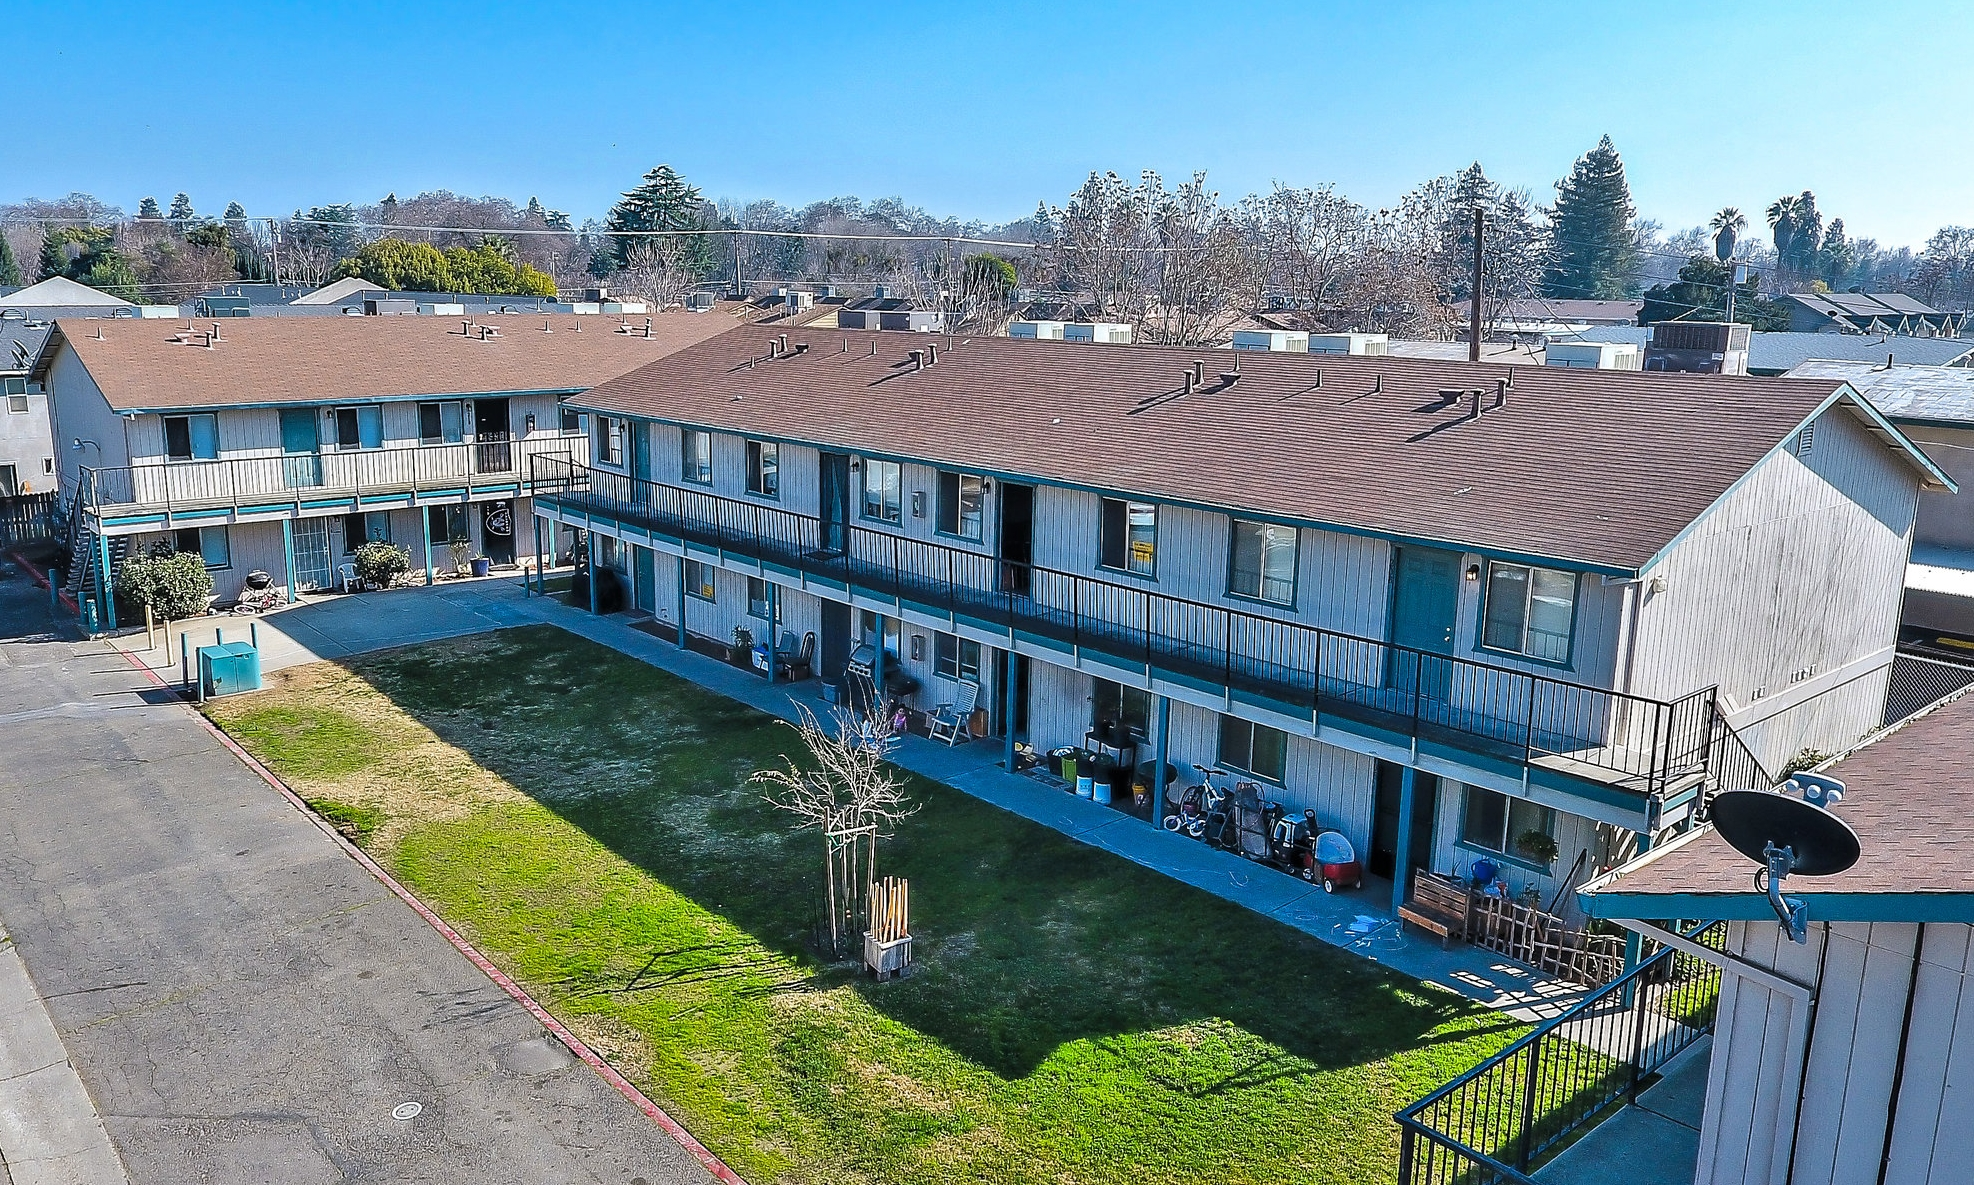 1108 Pioneer Ave, 1119 Colorado Ave, & 1230 Pioneer Ave, Turlock, CA 95380 63 Unit Multi-Family Units of Three Distinct and Separate Apartment Communities $6,800,000